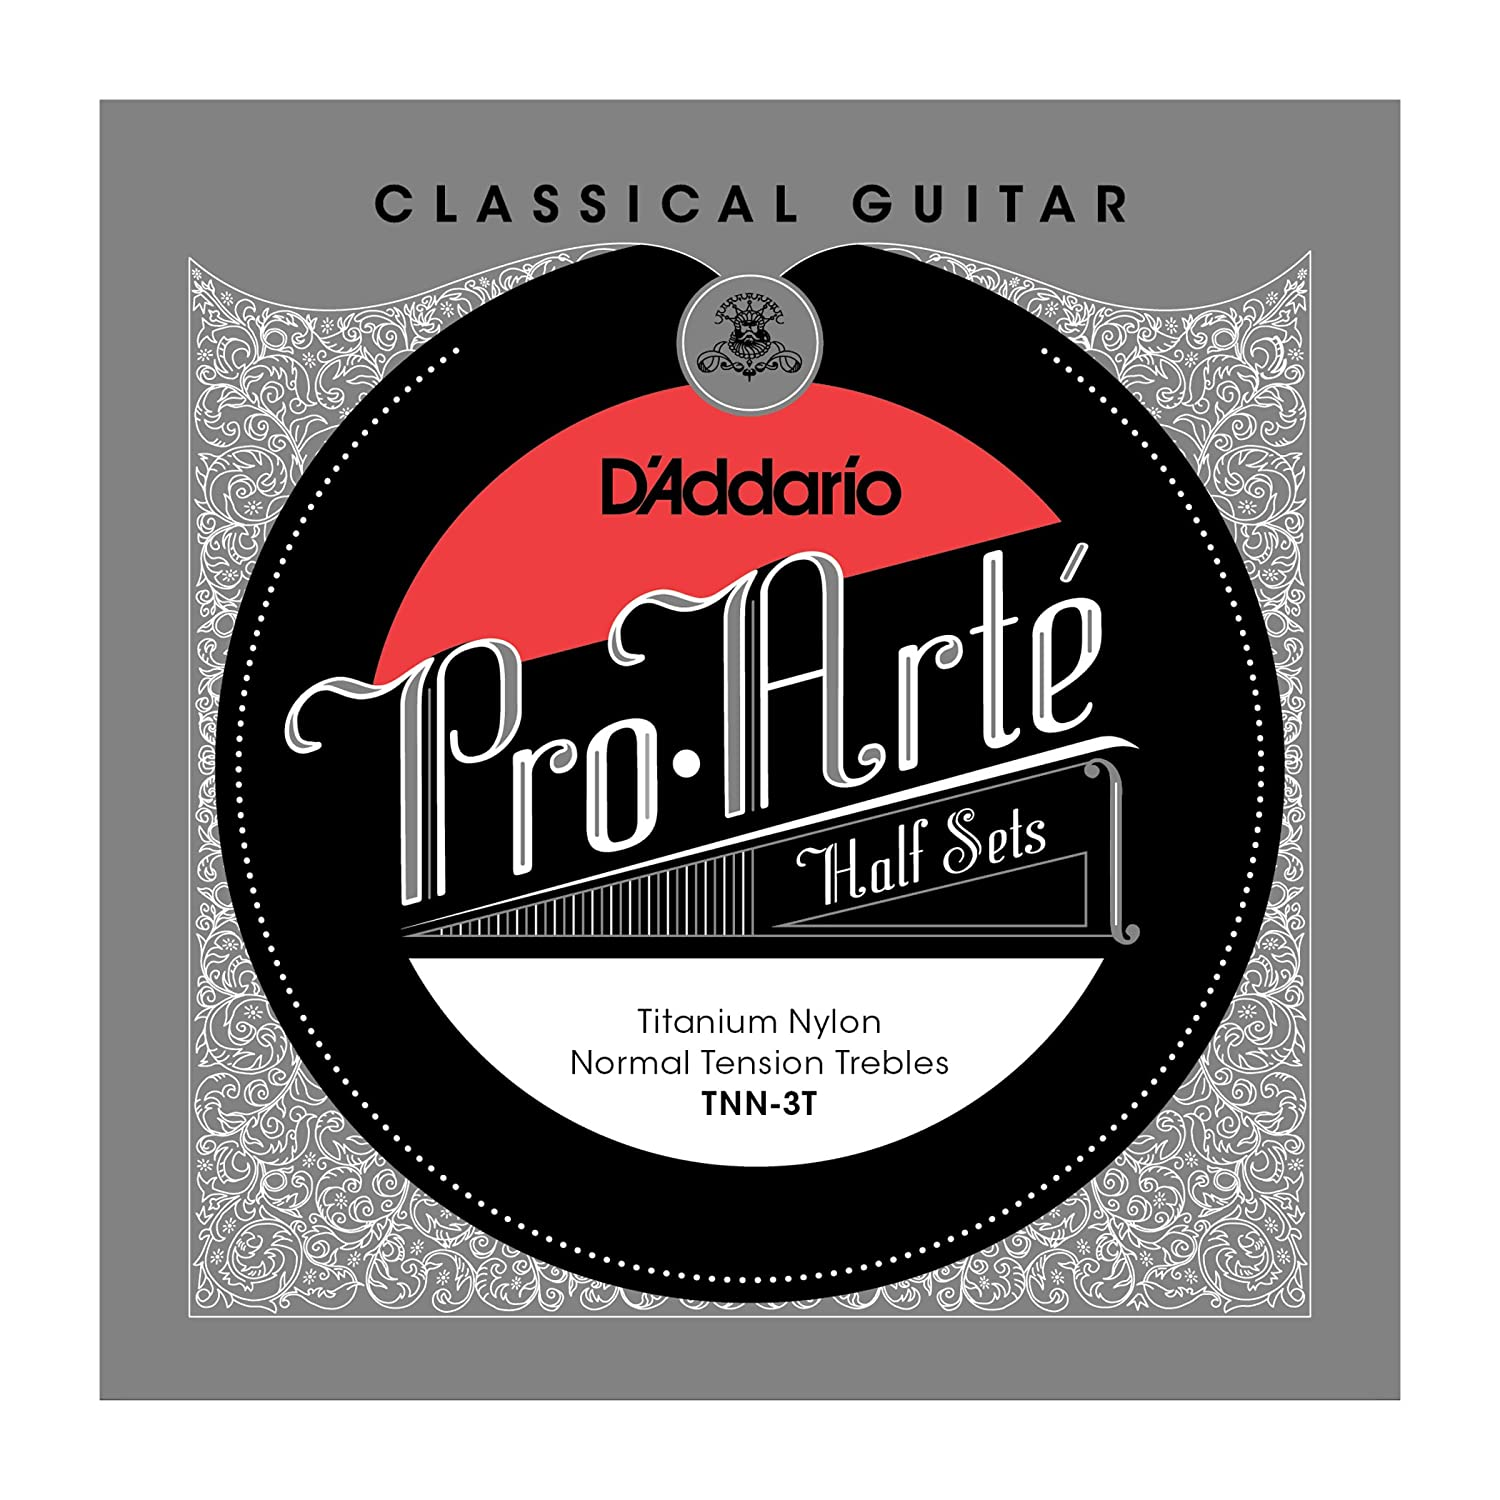 D'Addario TNN-3T Nylon Classical Guitar Strings, Medium D' Addario